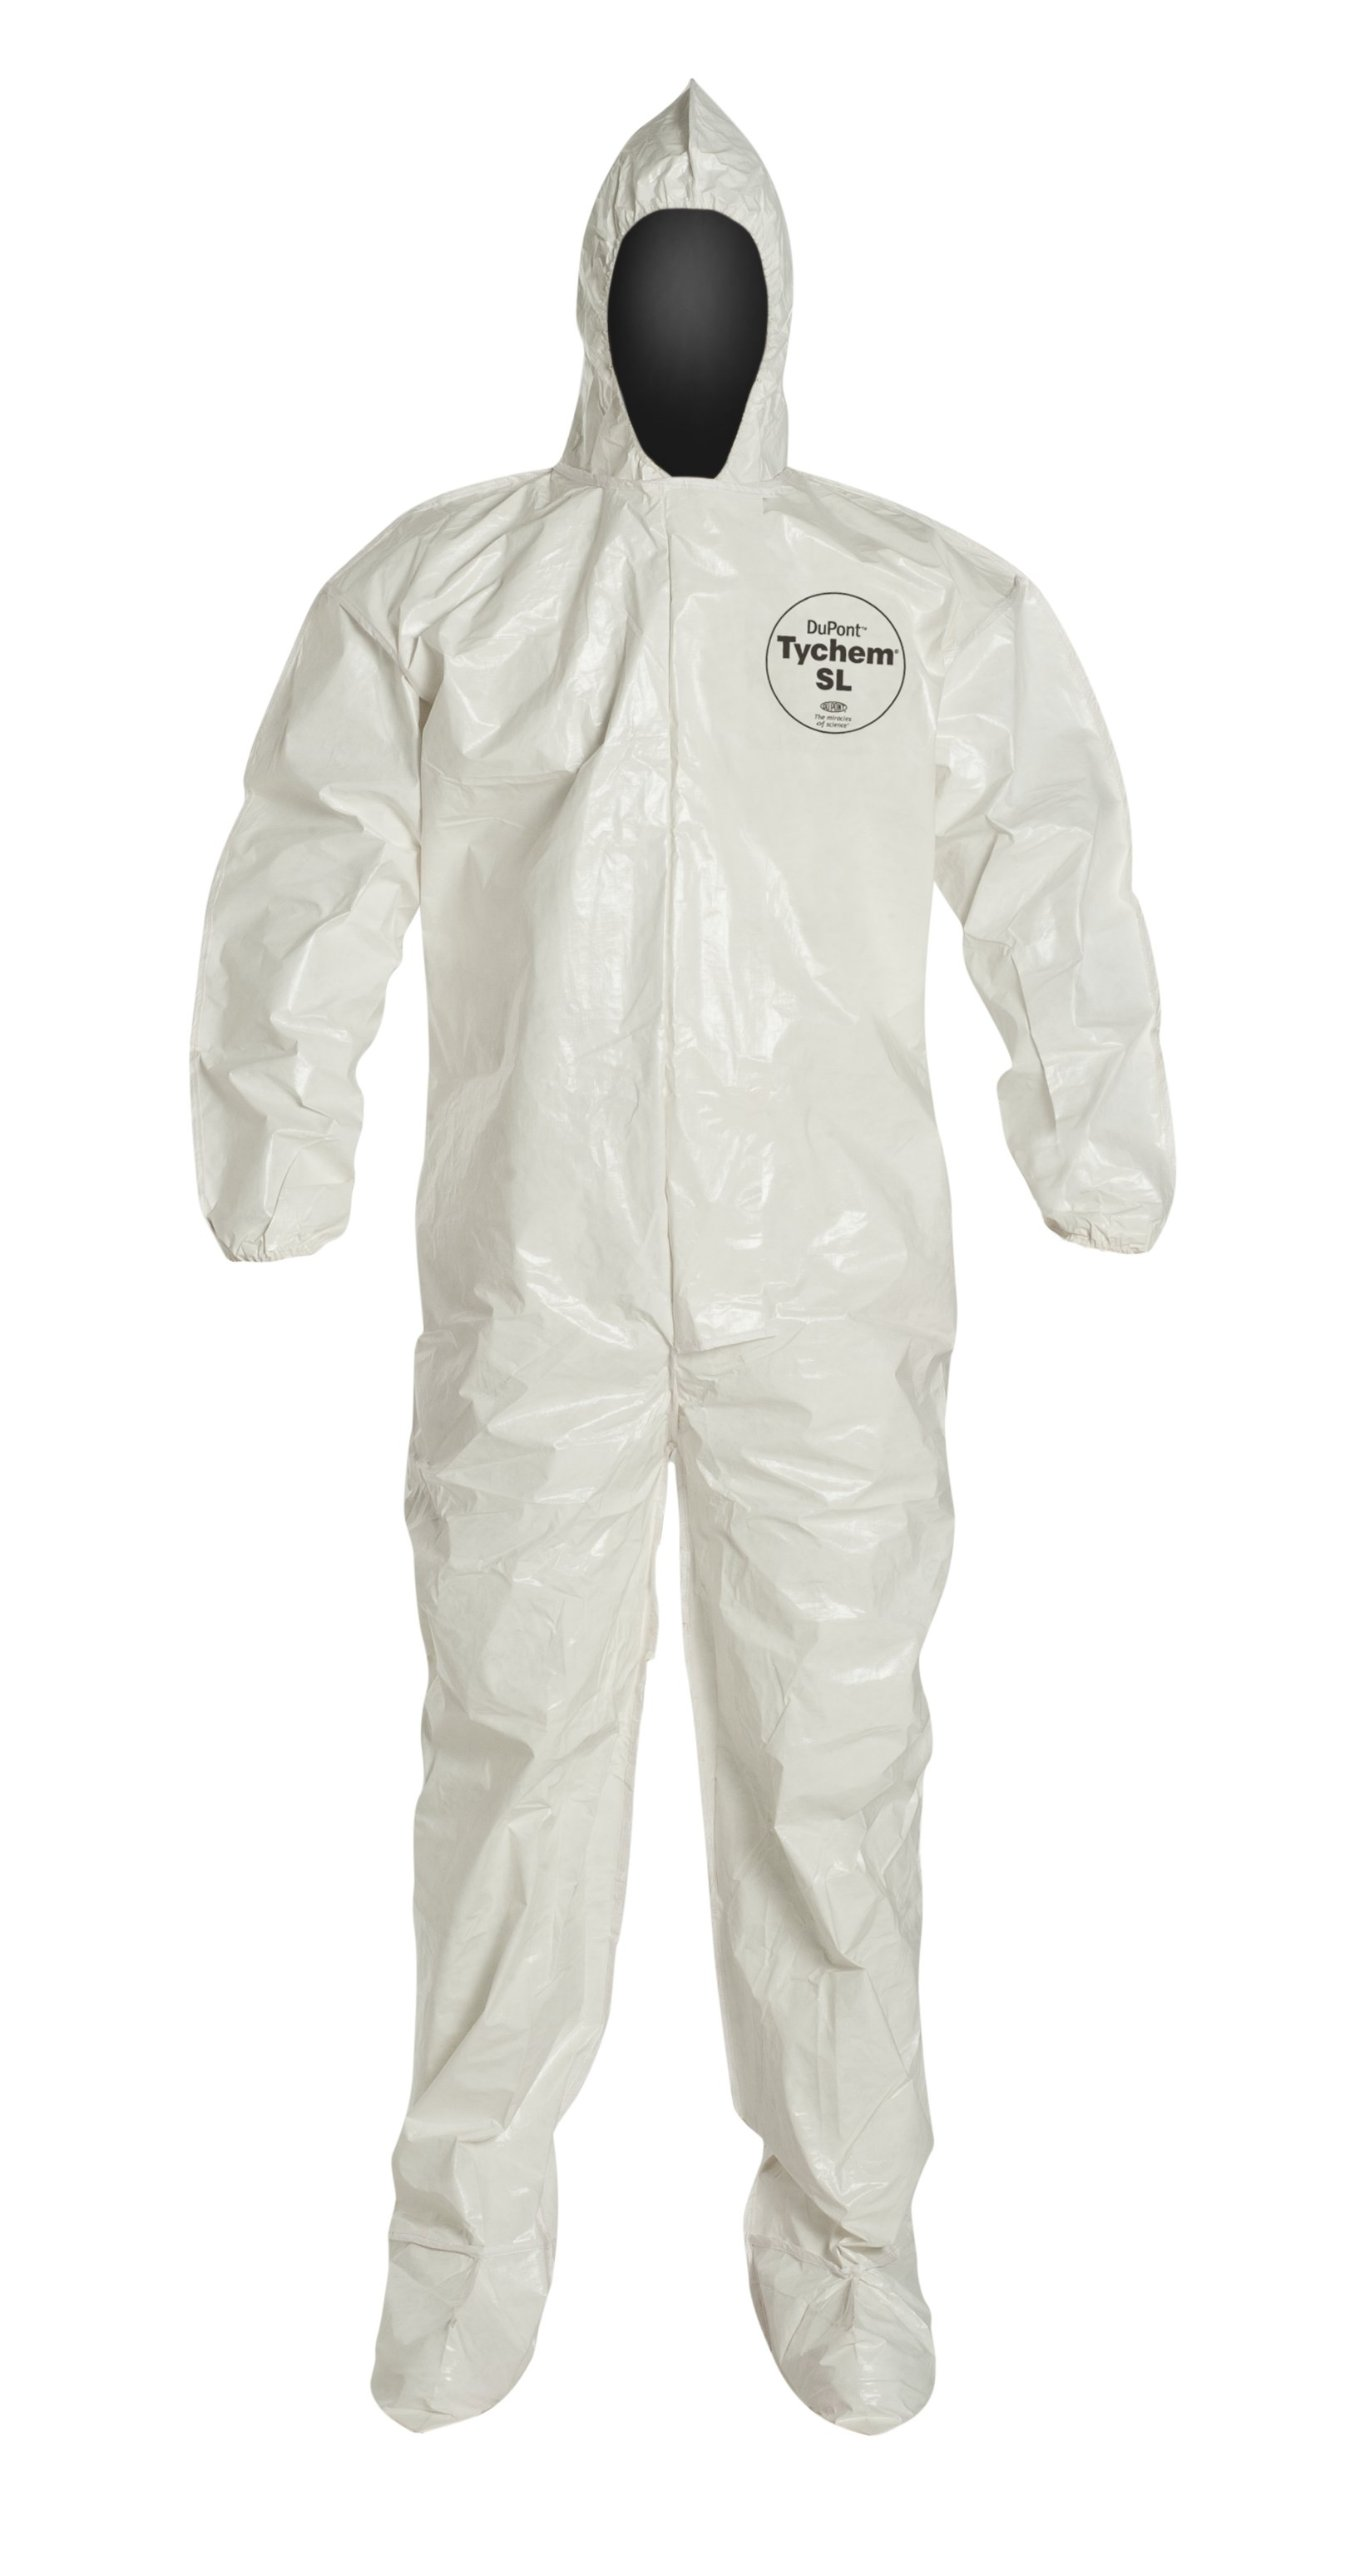 DuPont Tychem 4000 SL122B Chemical Resistant Coverall with Hood and Boots, Disposable, Bound Seams, Elastic Cuff, White, 3XL (Pack of 12)